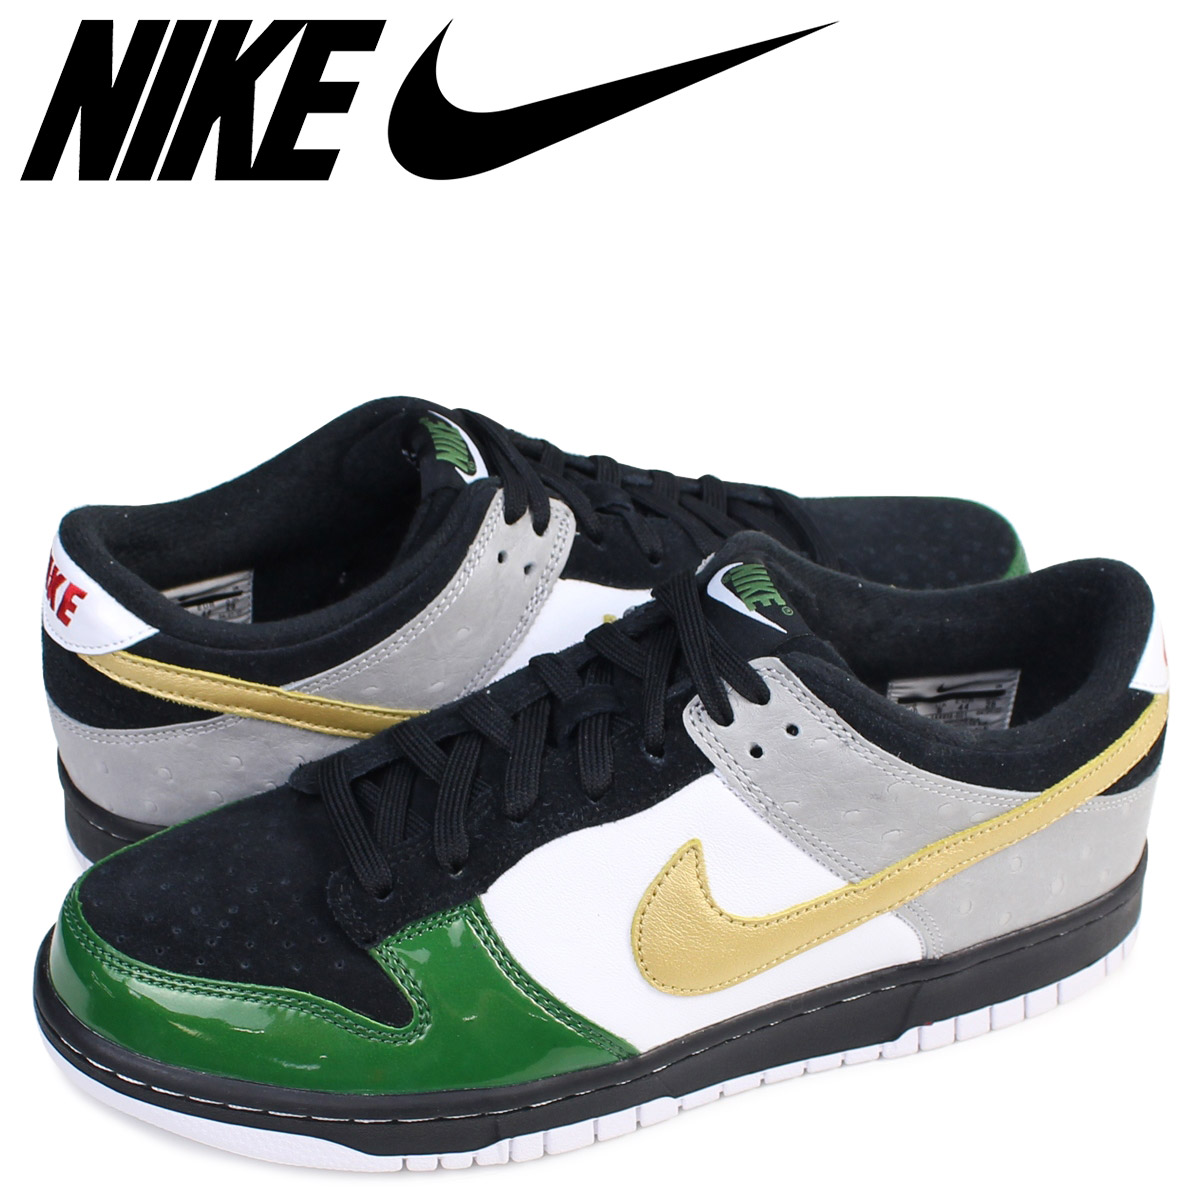 brand new 1d388 28974 NIKE Nike dunk low sneakers DUNK LOW JP MITA SNEAKERS AA4414-001 men taking  a ...